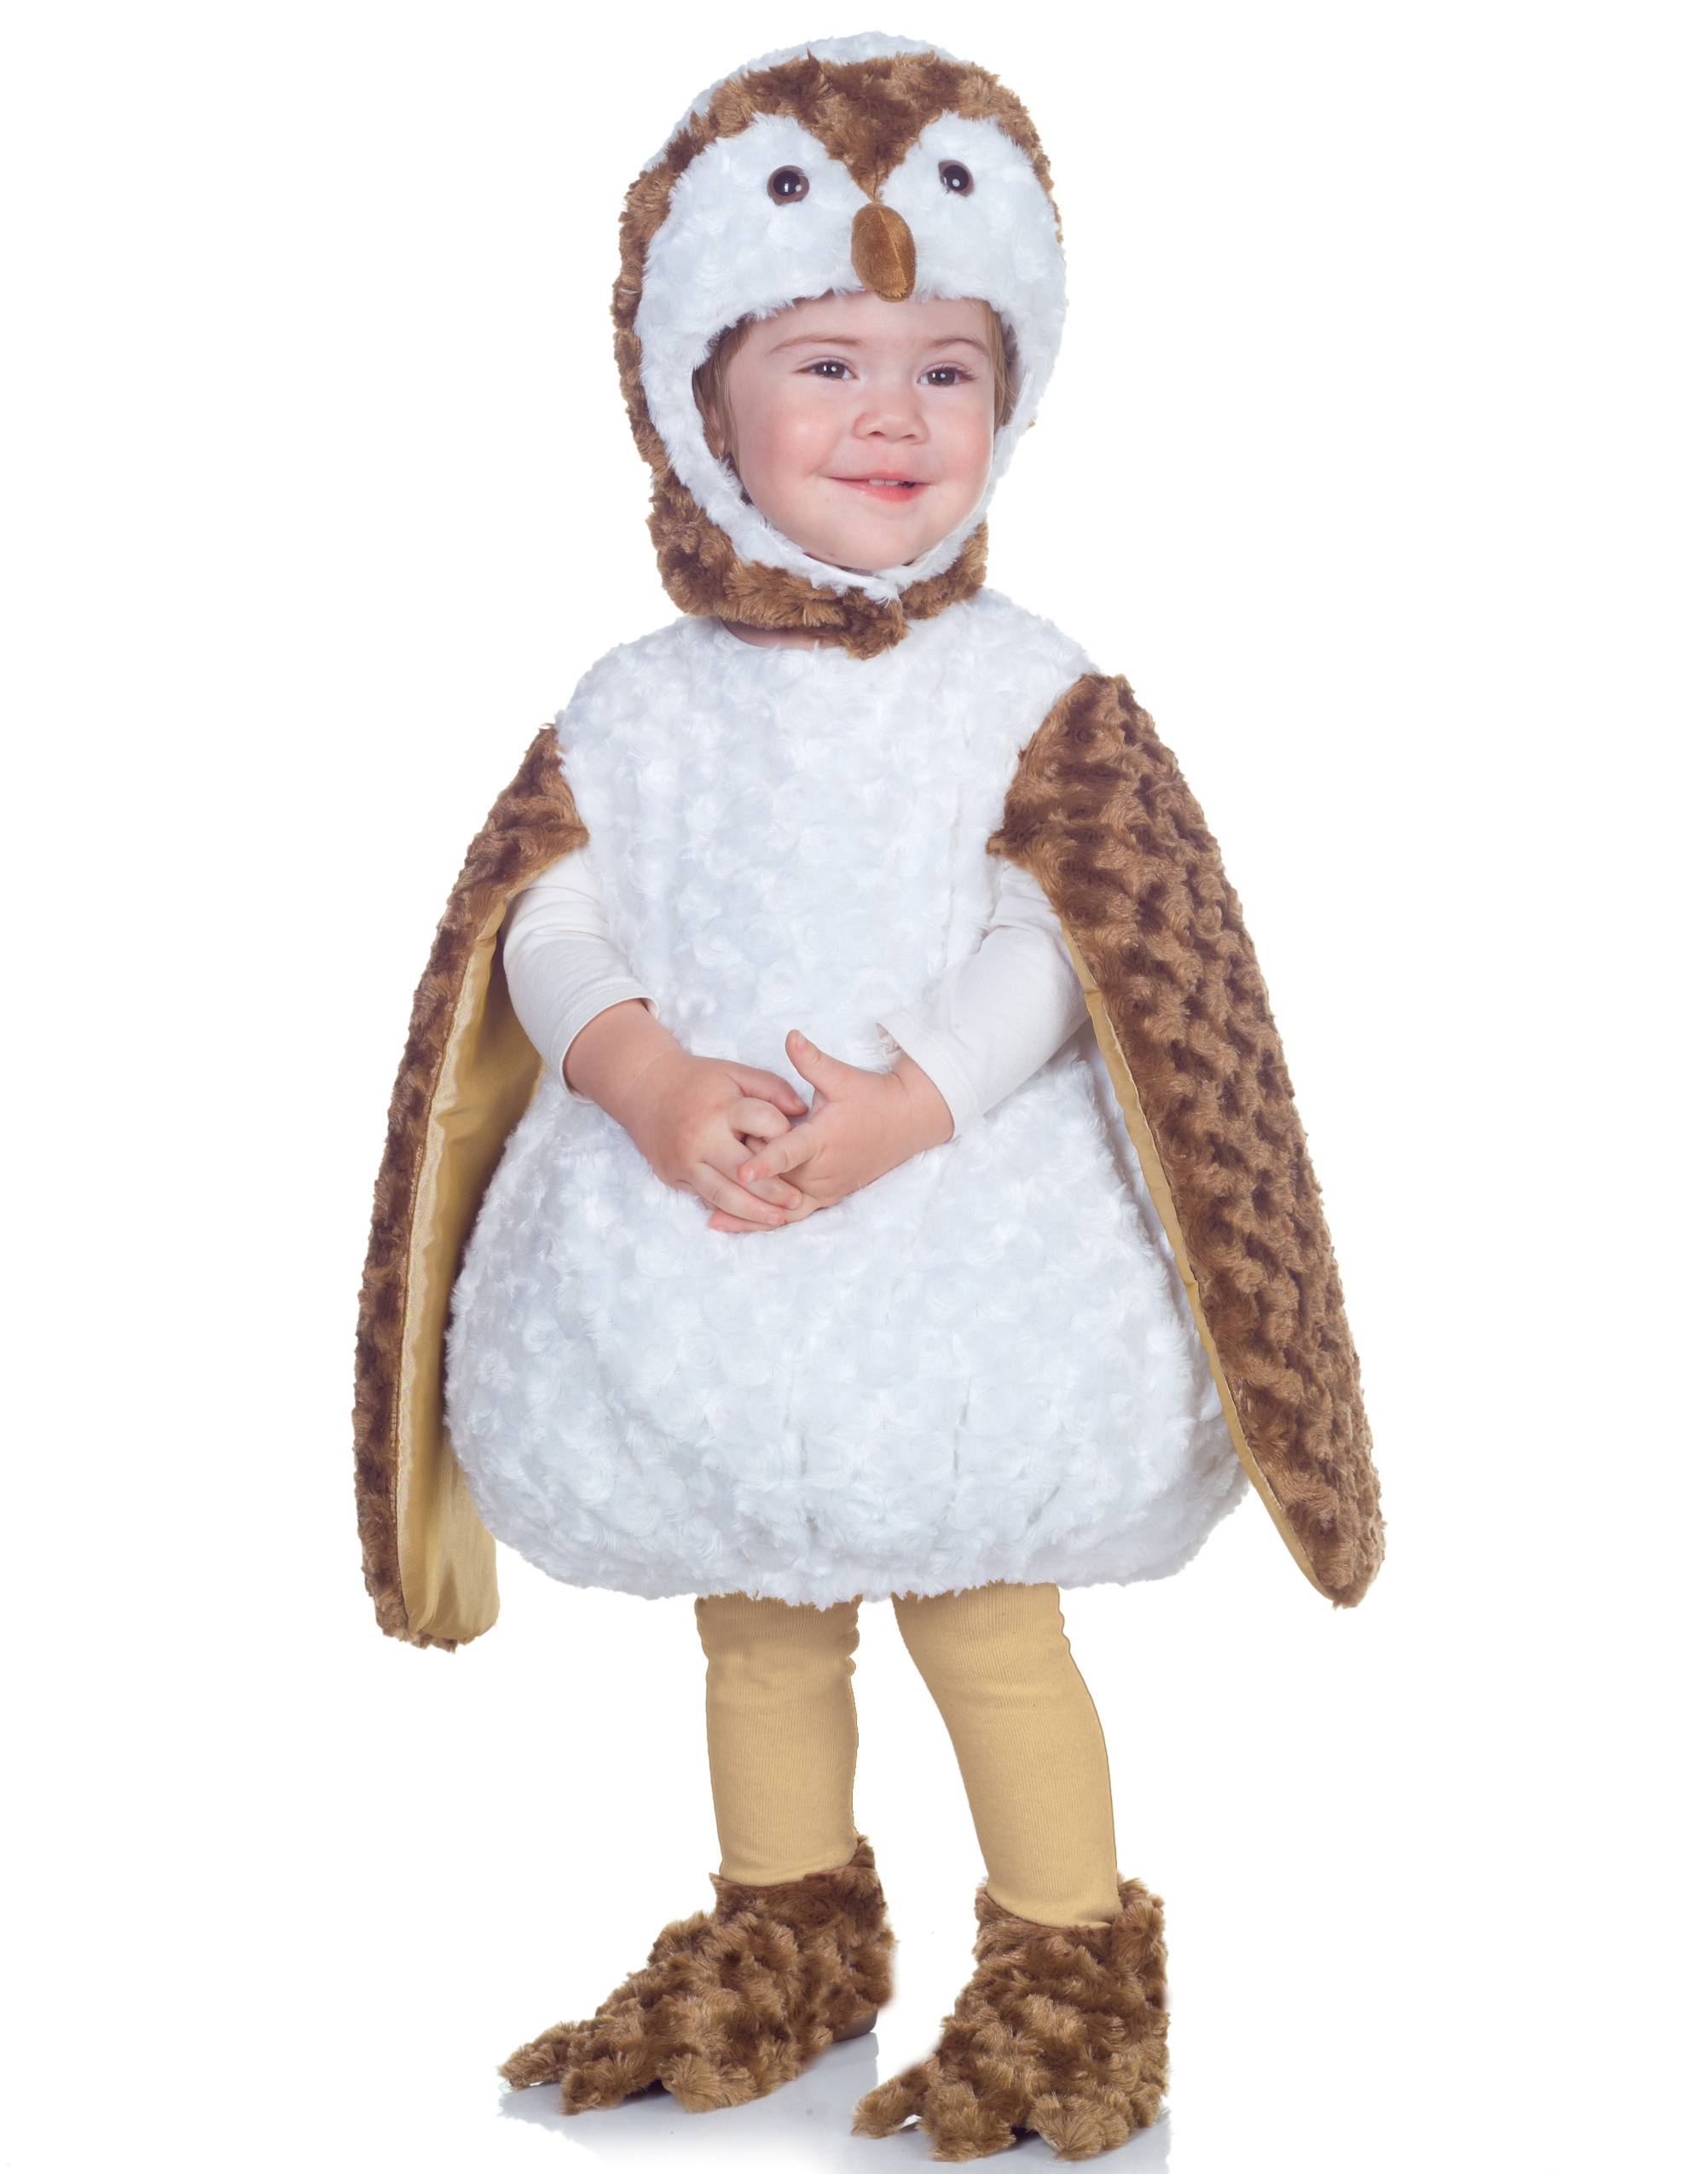 Find great deals on eBay for baby dress owl. Shop with confidence.